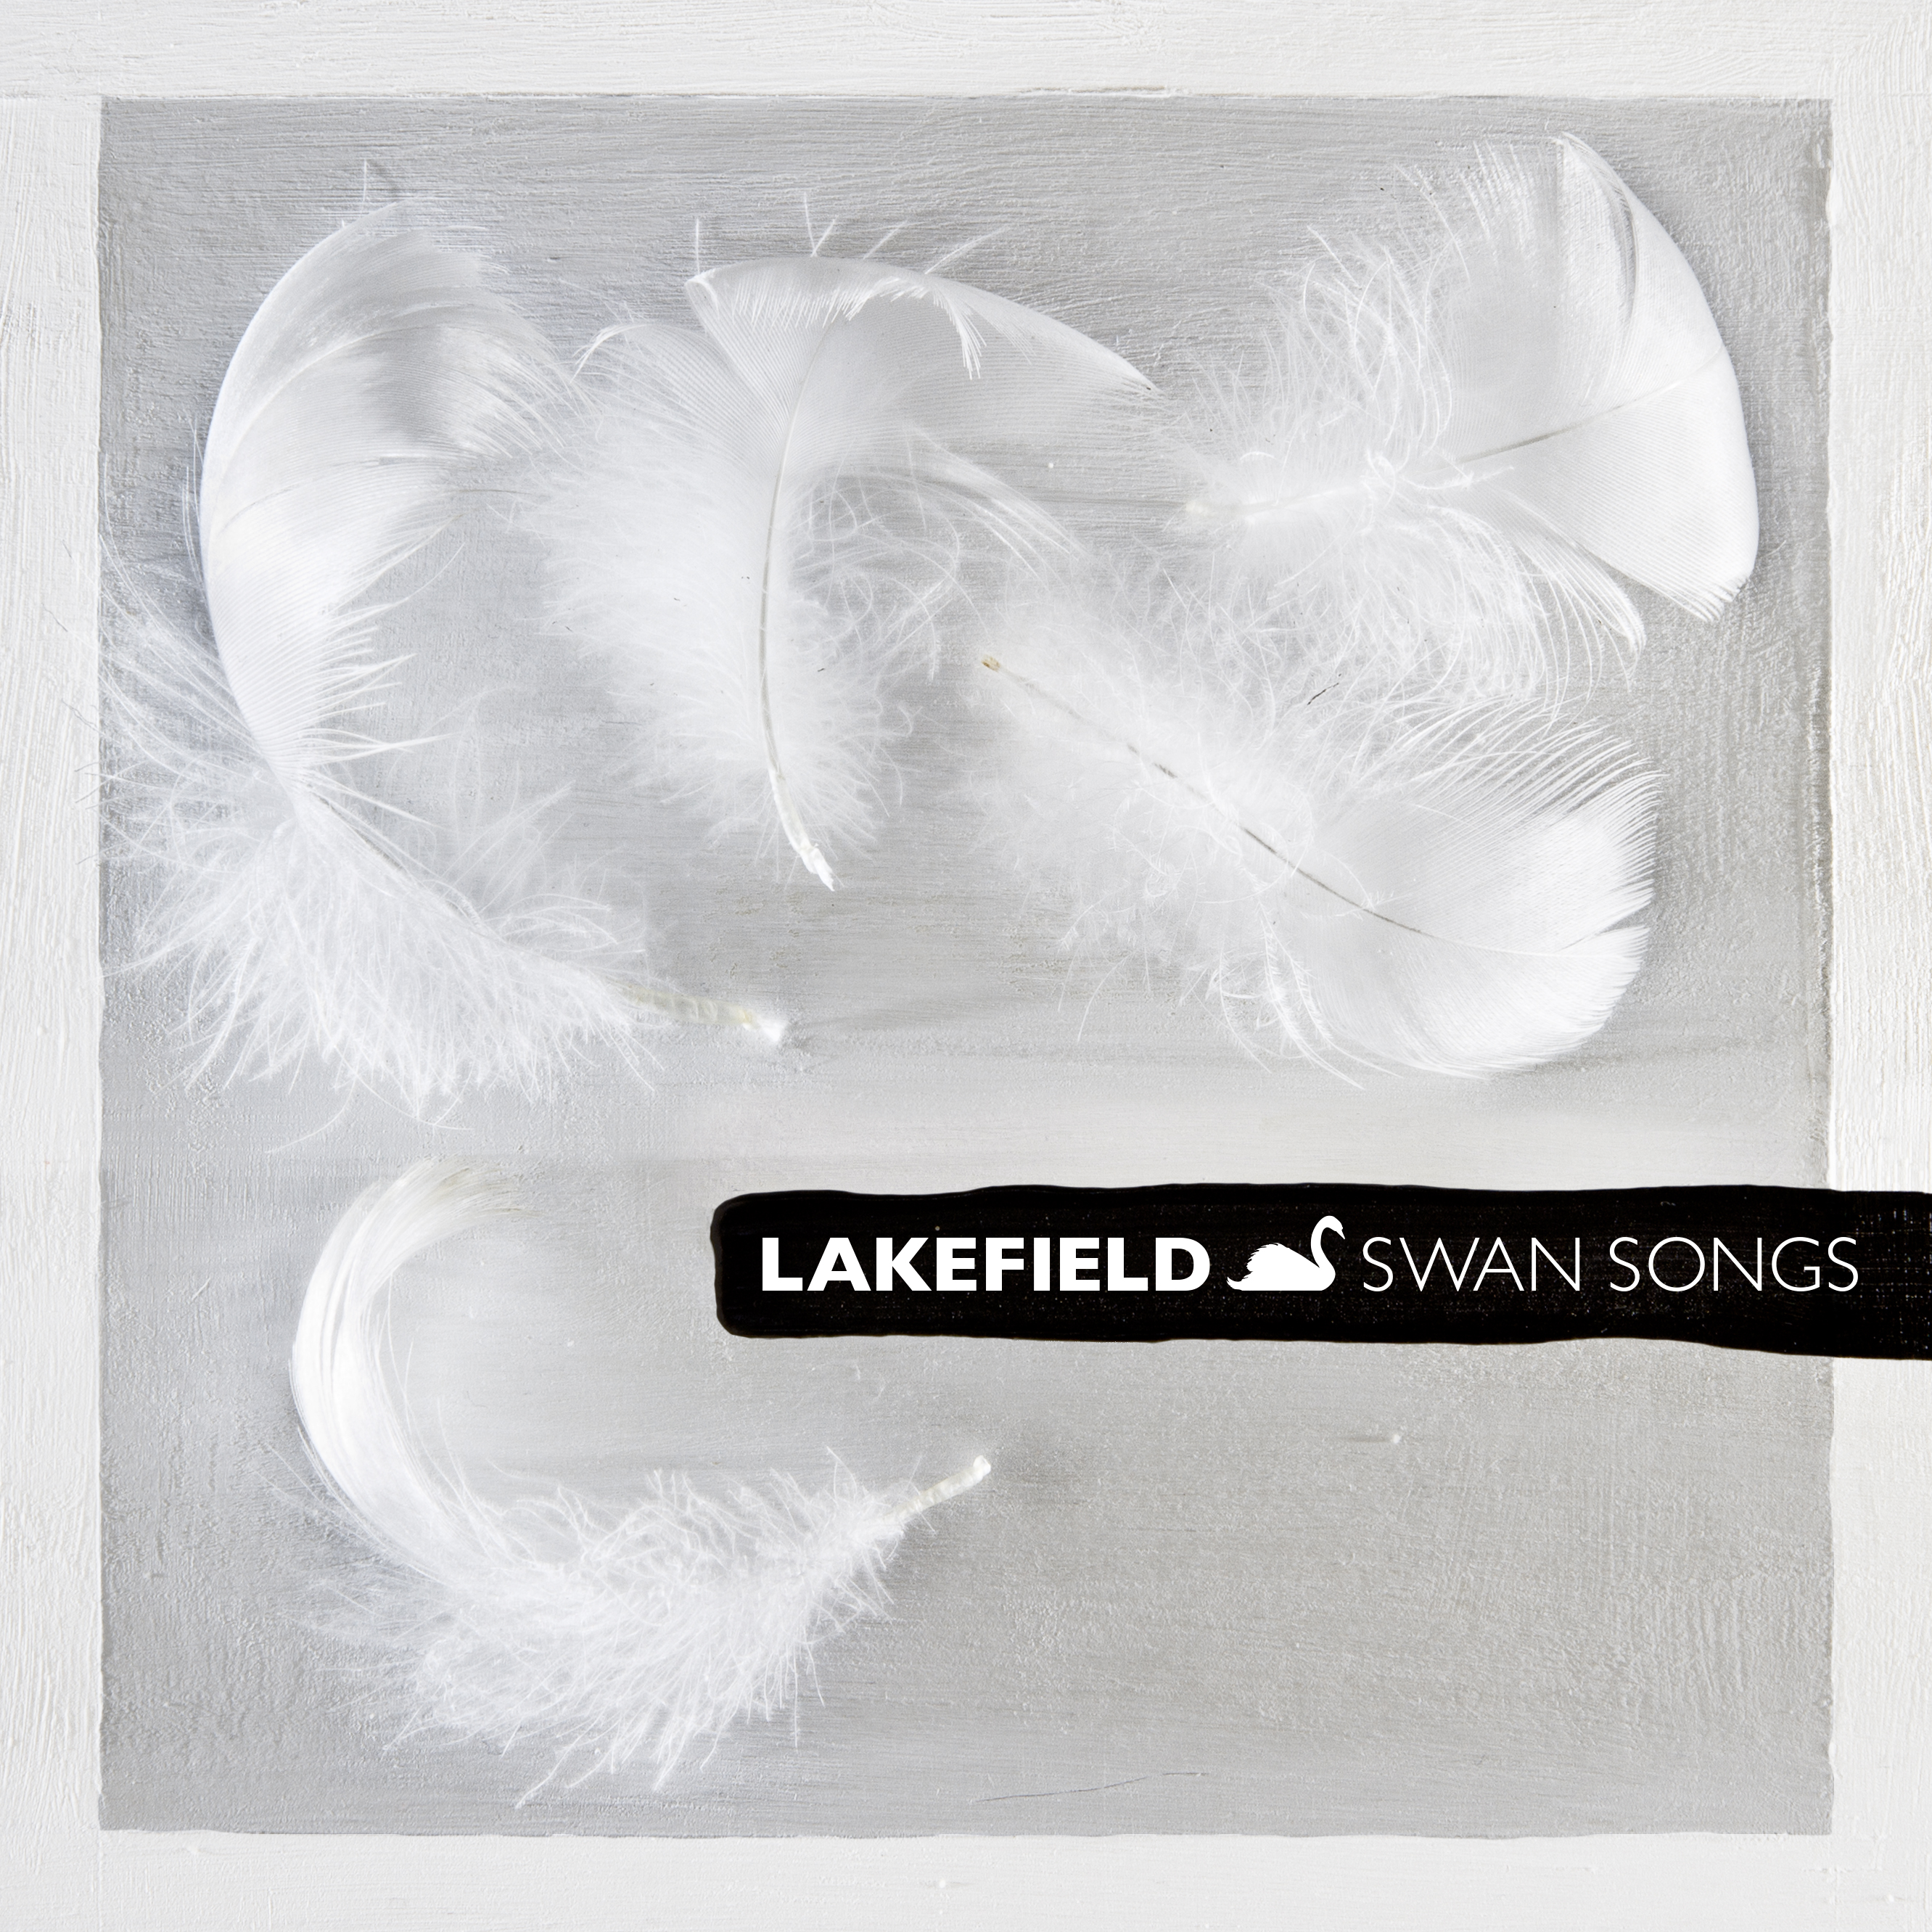 Lakefield Swan Songs album cover artwork